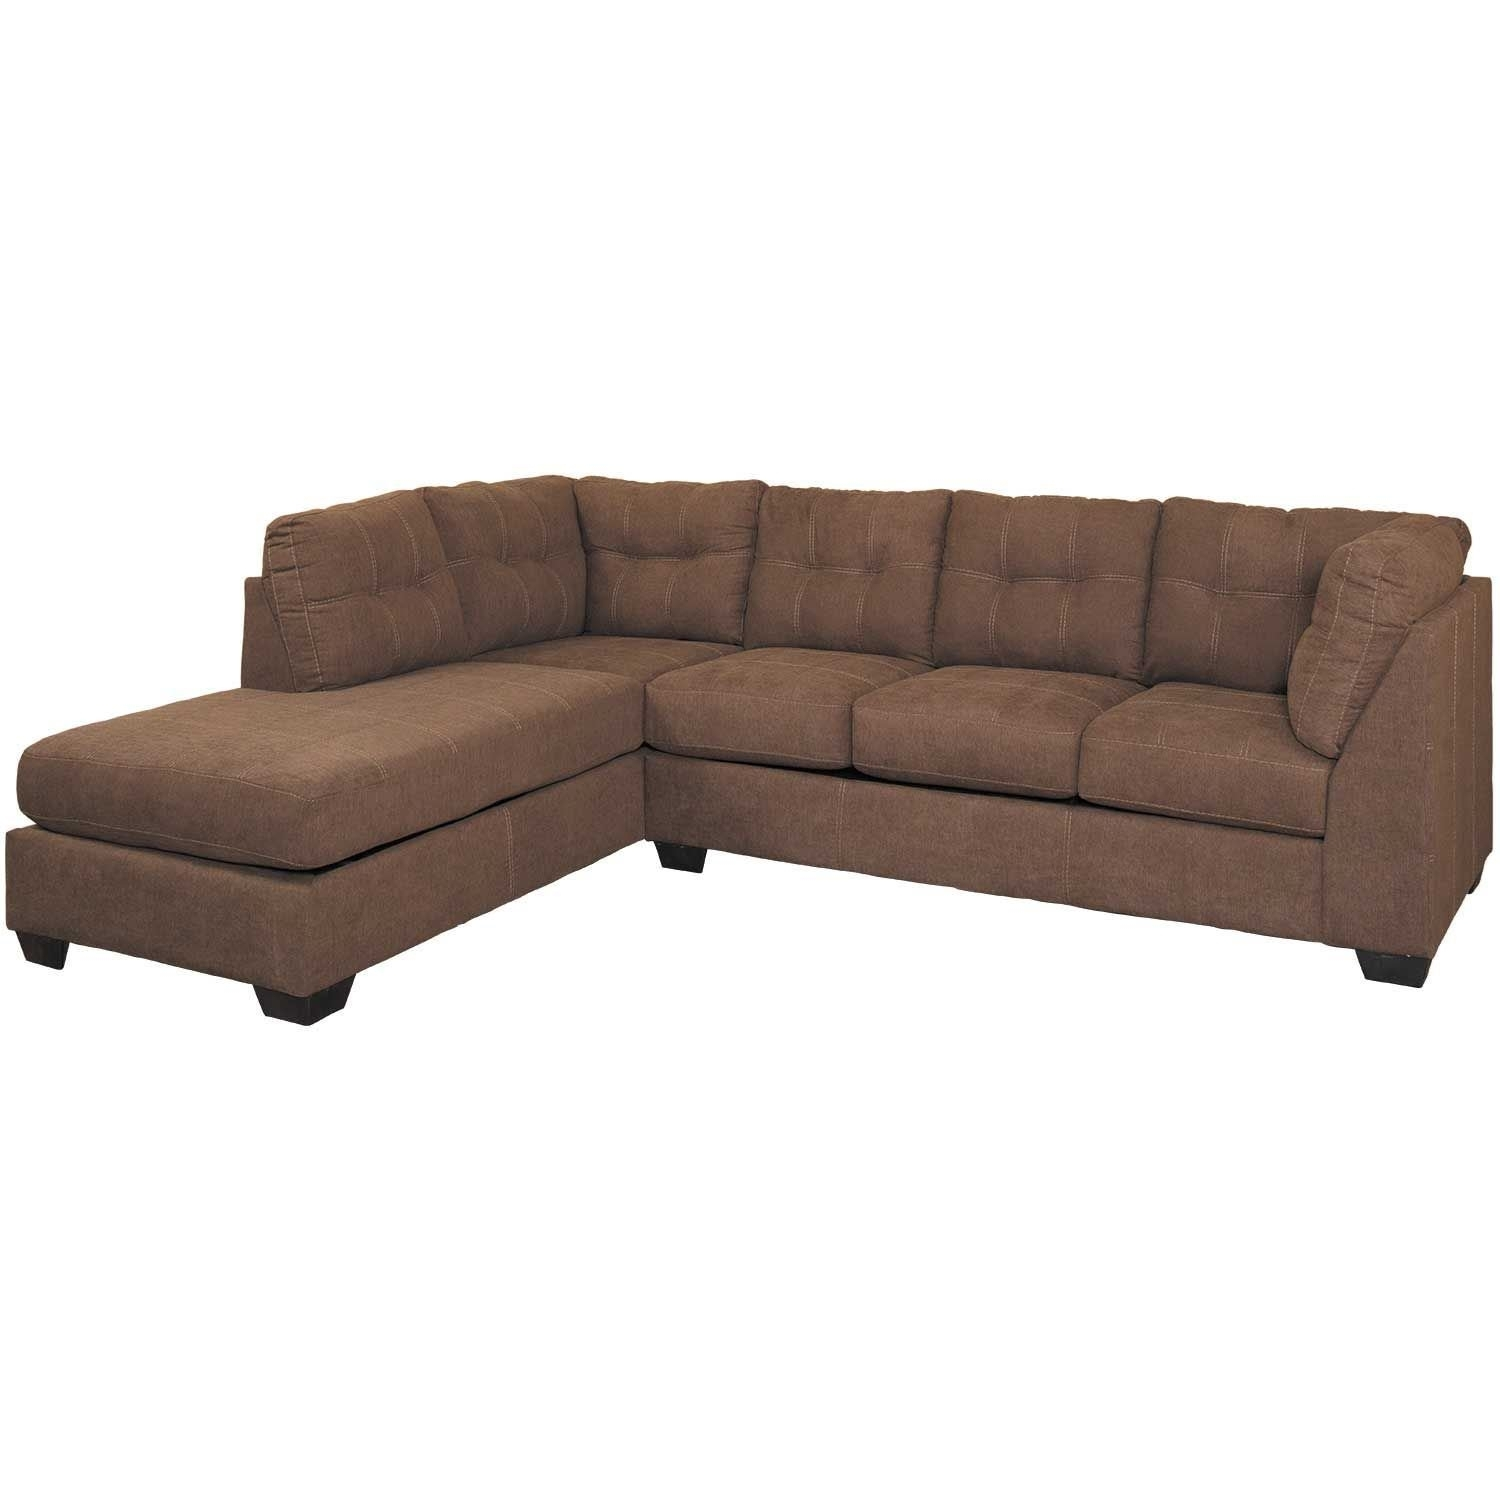 Maier Walnut 2 Piece Sectional With Laf Chaise | 4520116/67 | Ashley Regarding Arrowmask 2 Piece Sectionals With Sleeper & Left Facing Chaise (View 5 of 25)